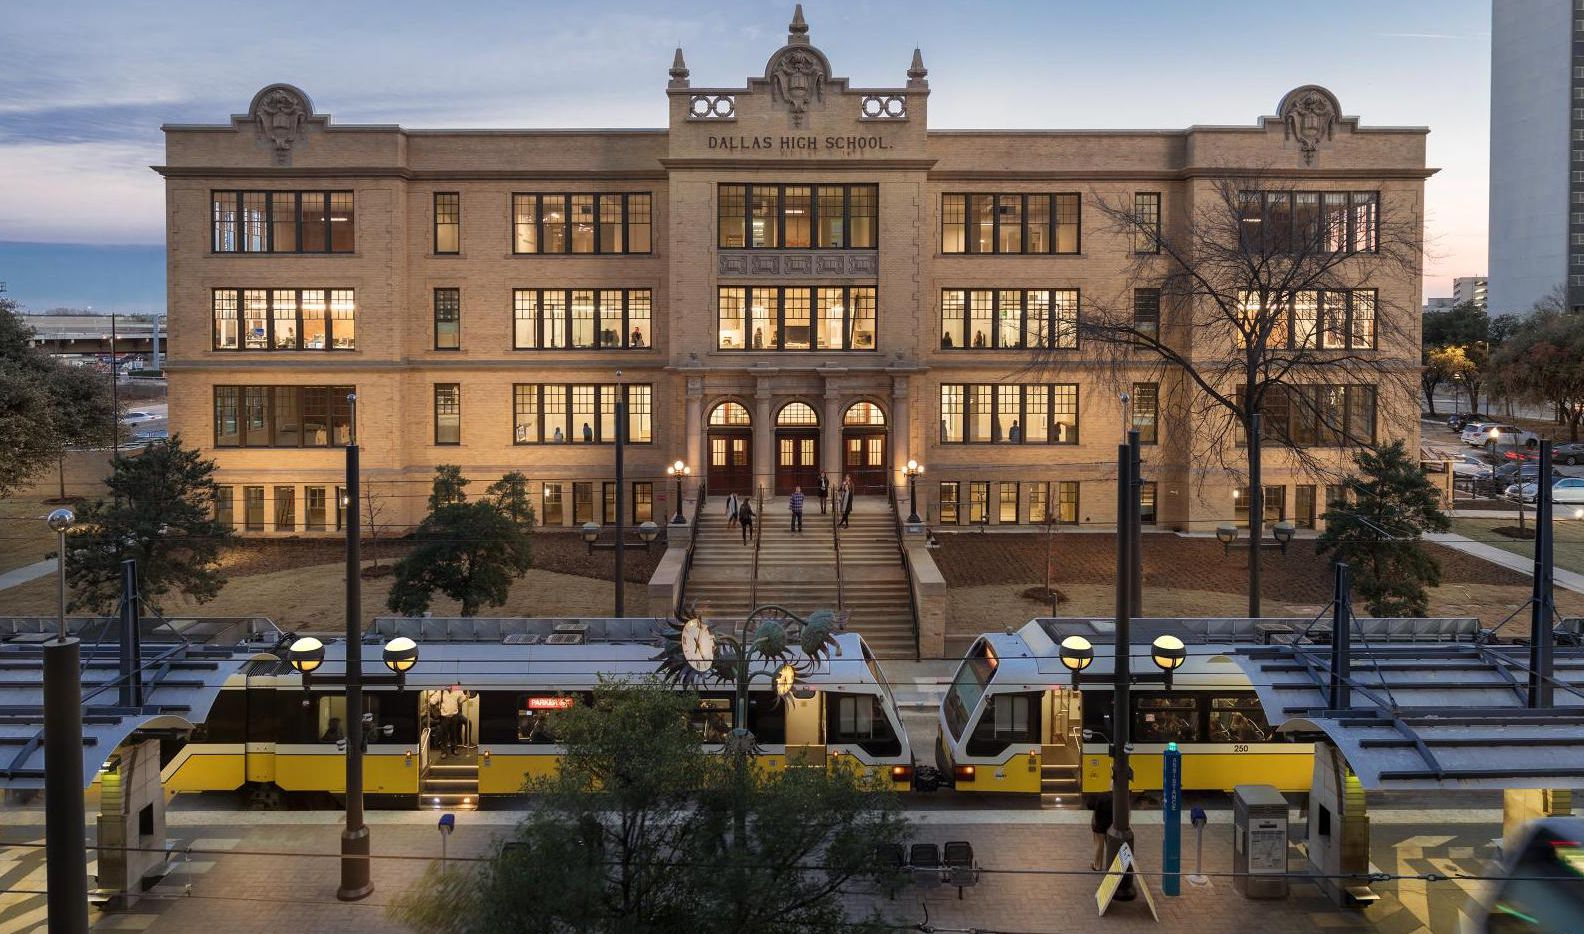 The more than century old Dallas High School was converted to offices.